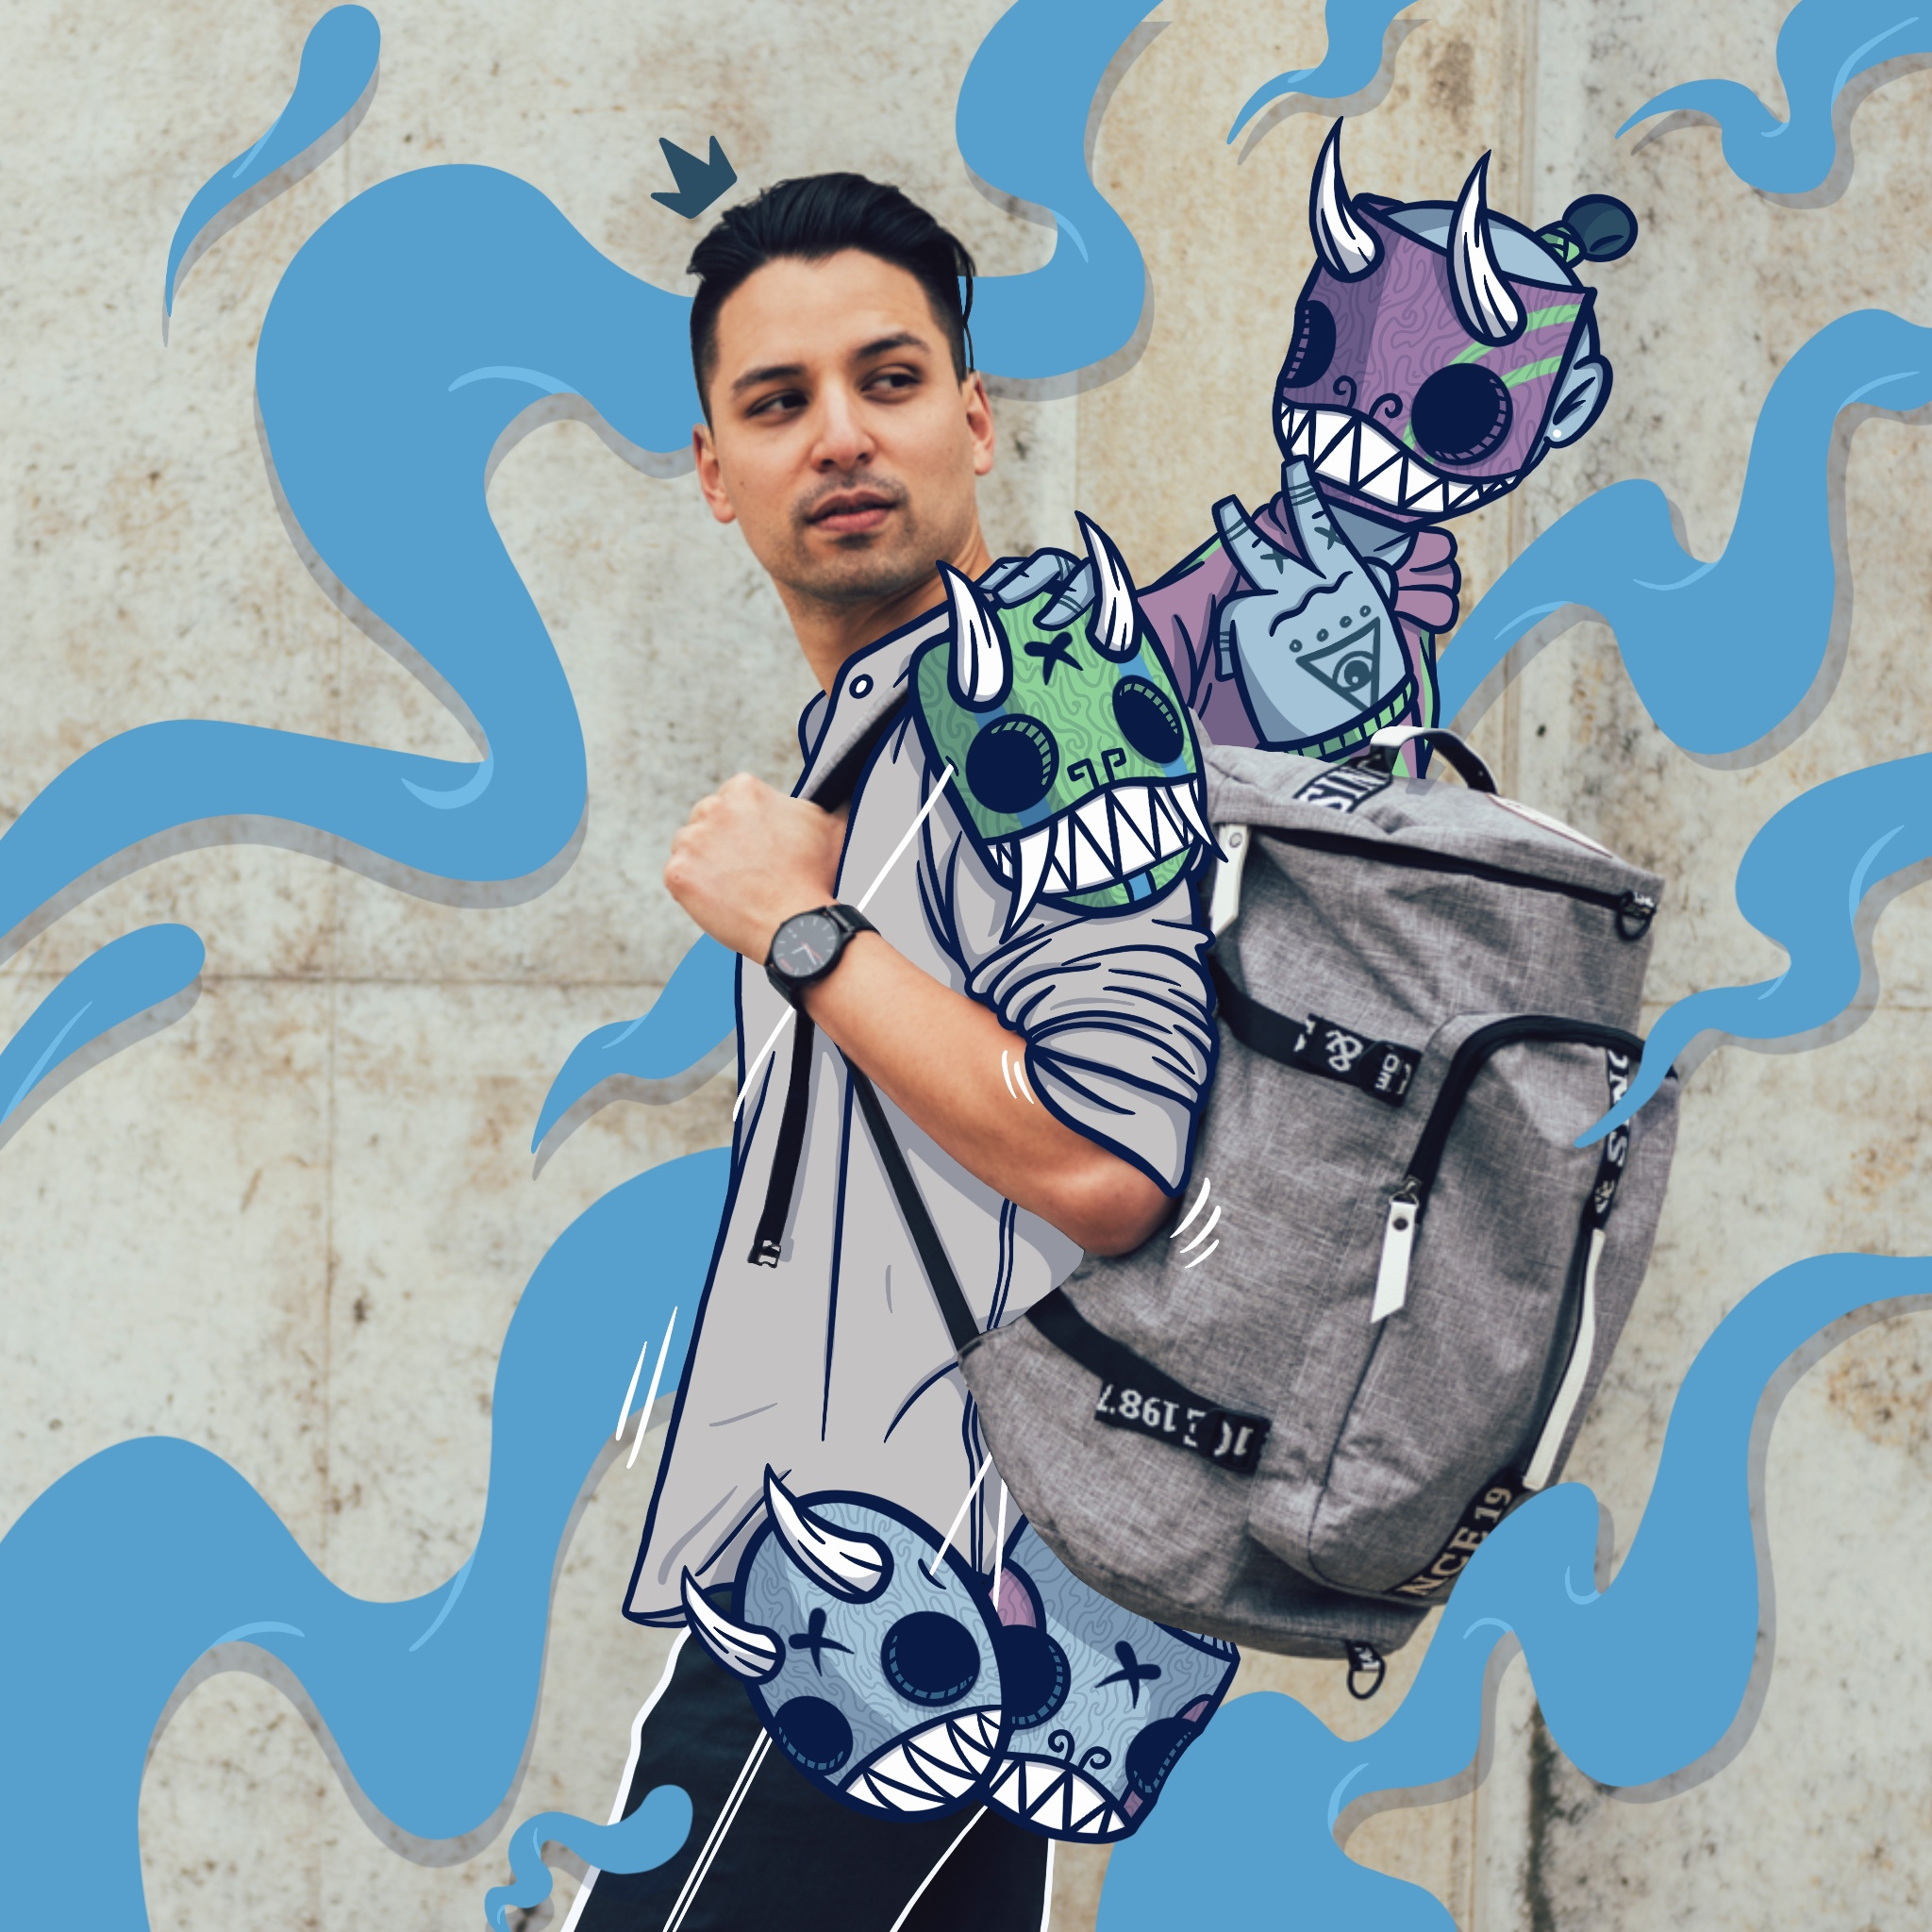 Backpack_Add.jpg